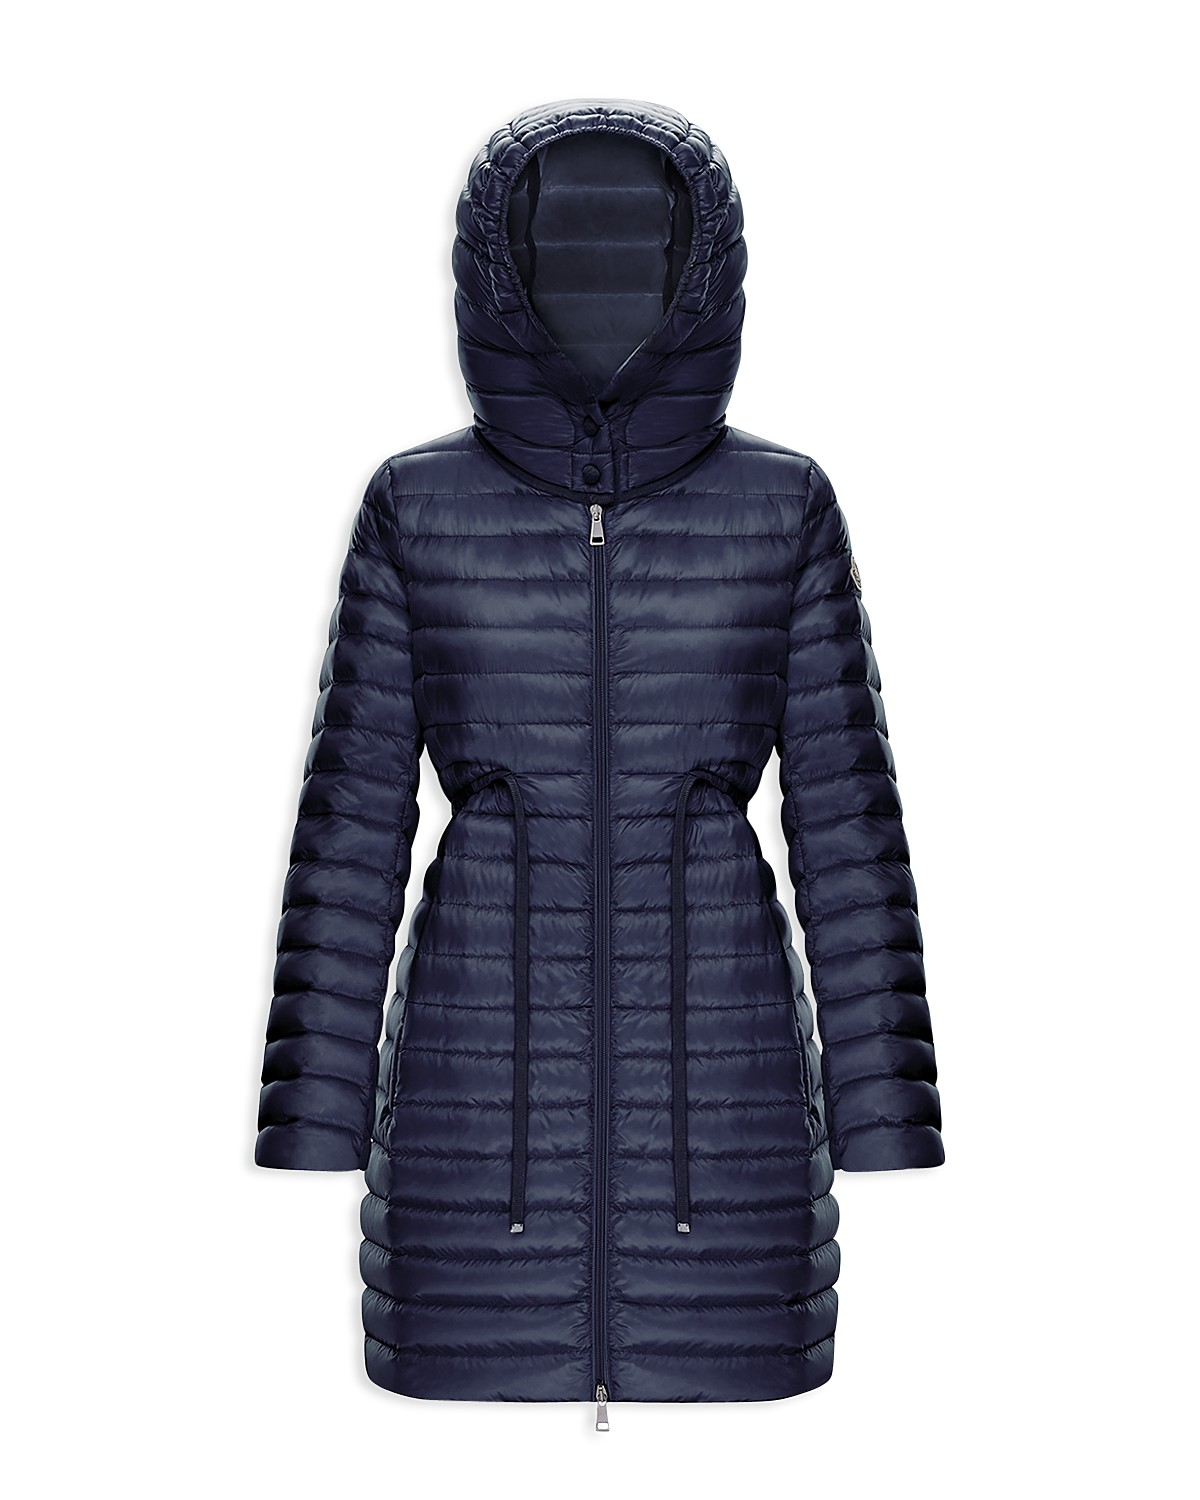 moncler outlet opinioni